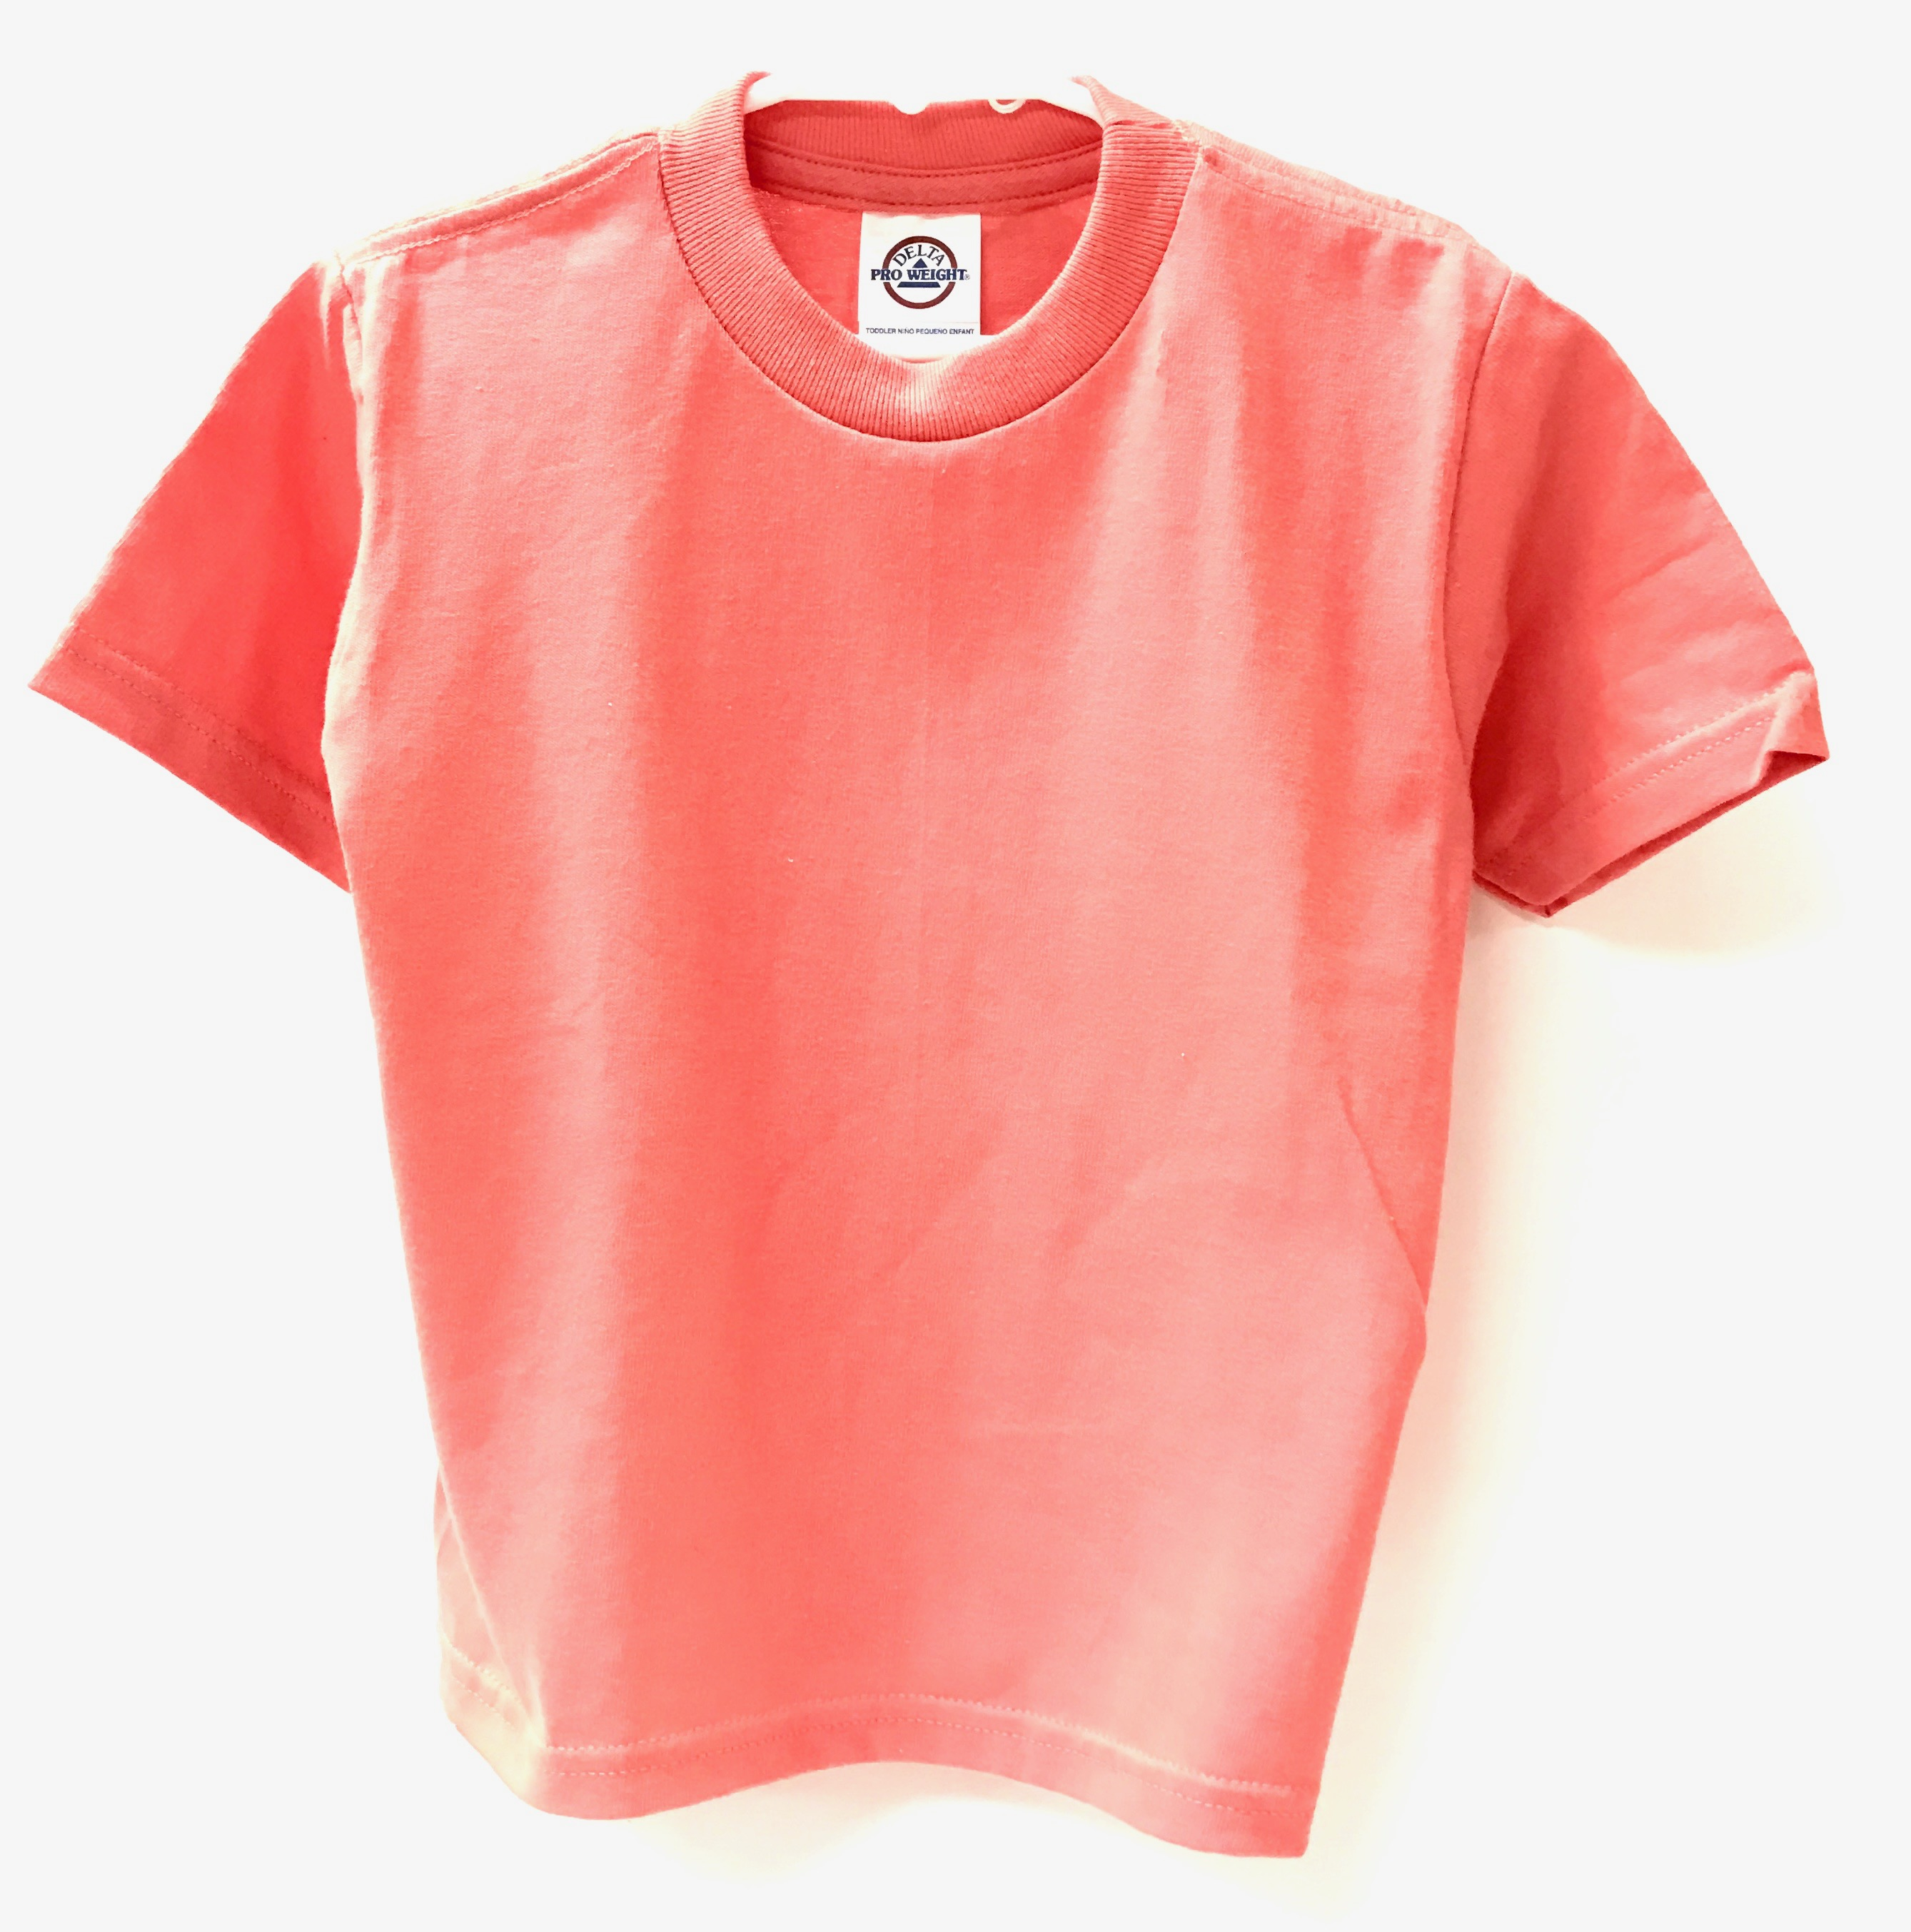 Toddler Short Sleeve Tee - Coral